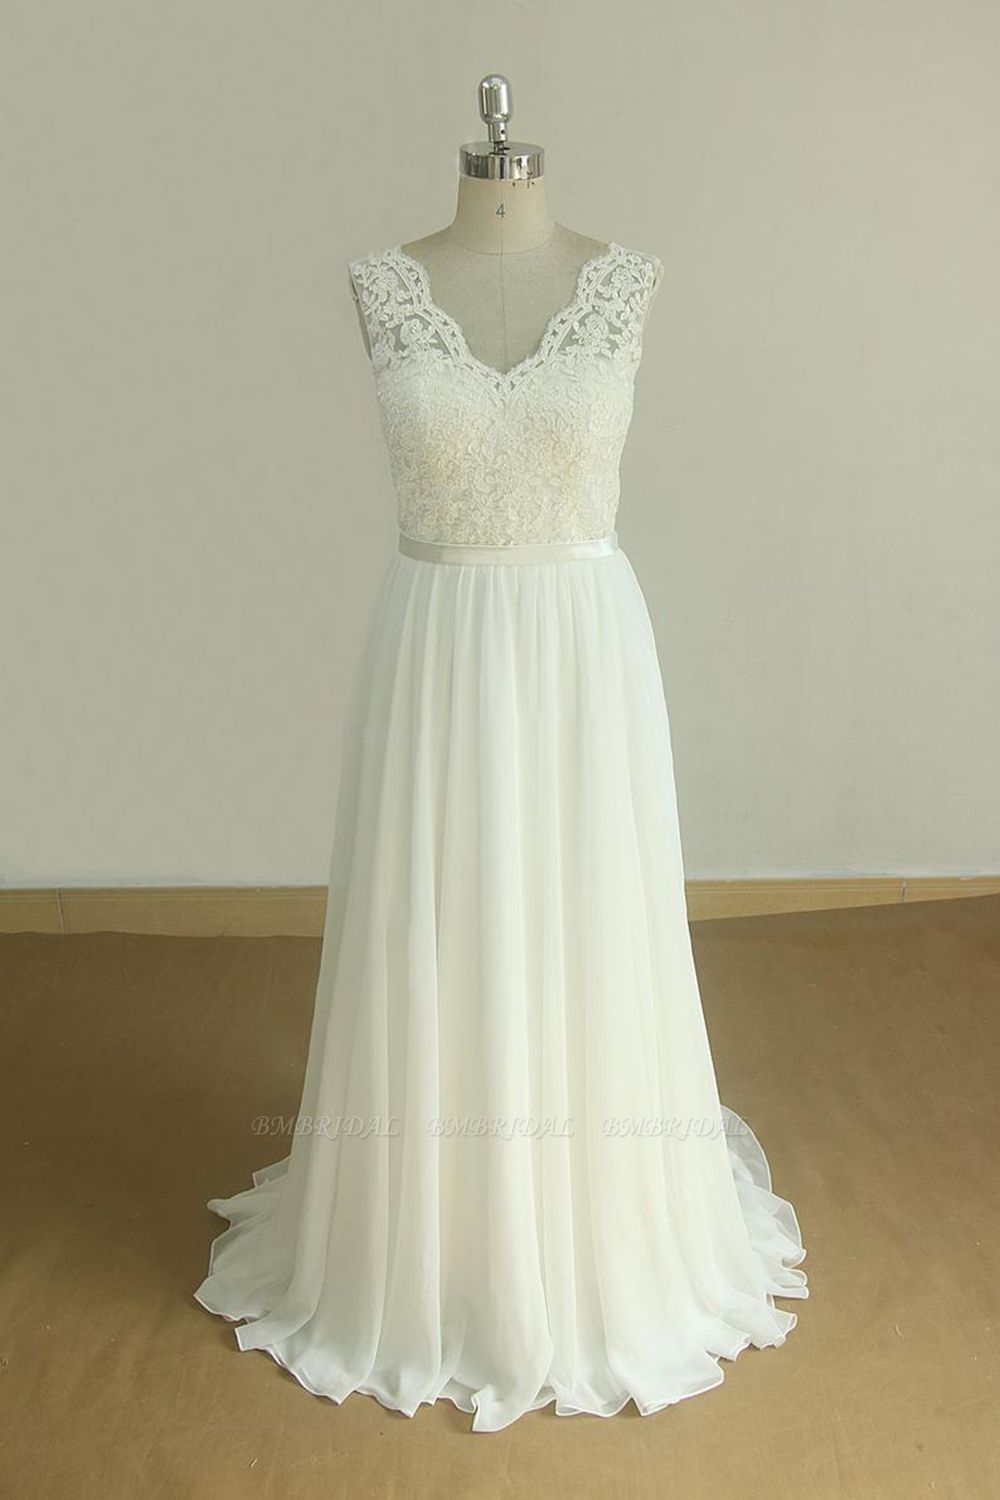 Elegant V-neck Sleeveless Lace Wedding Dresses White A-line Chiffon Bridal Gown On Sale